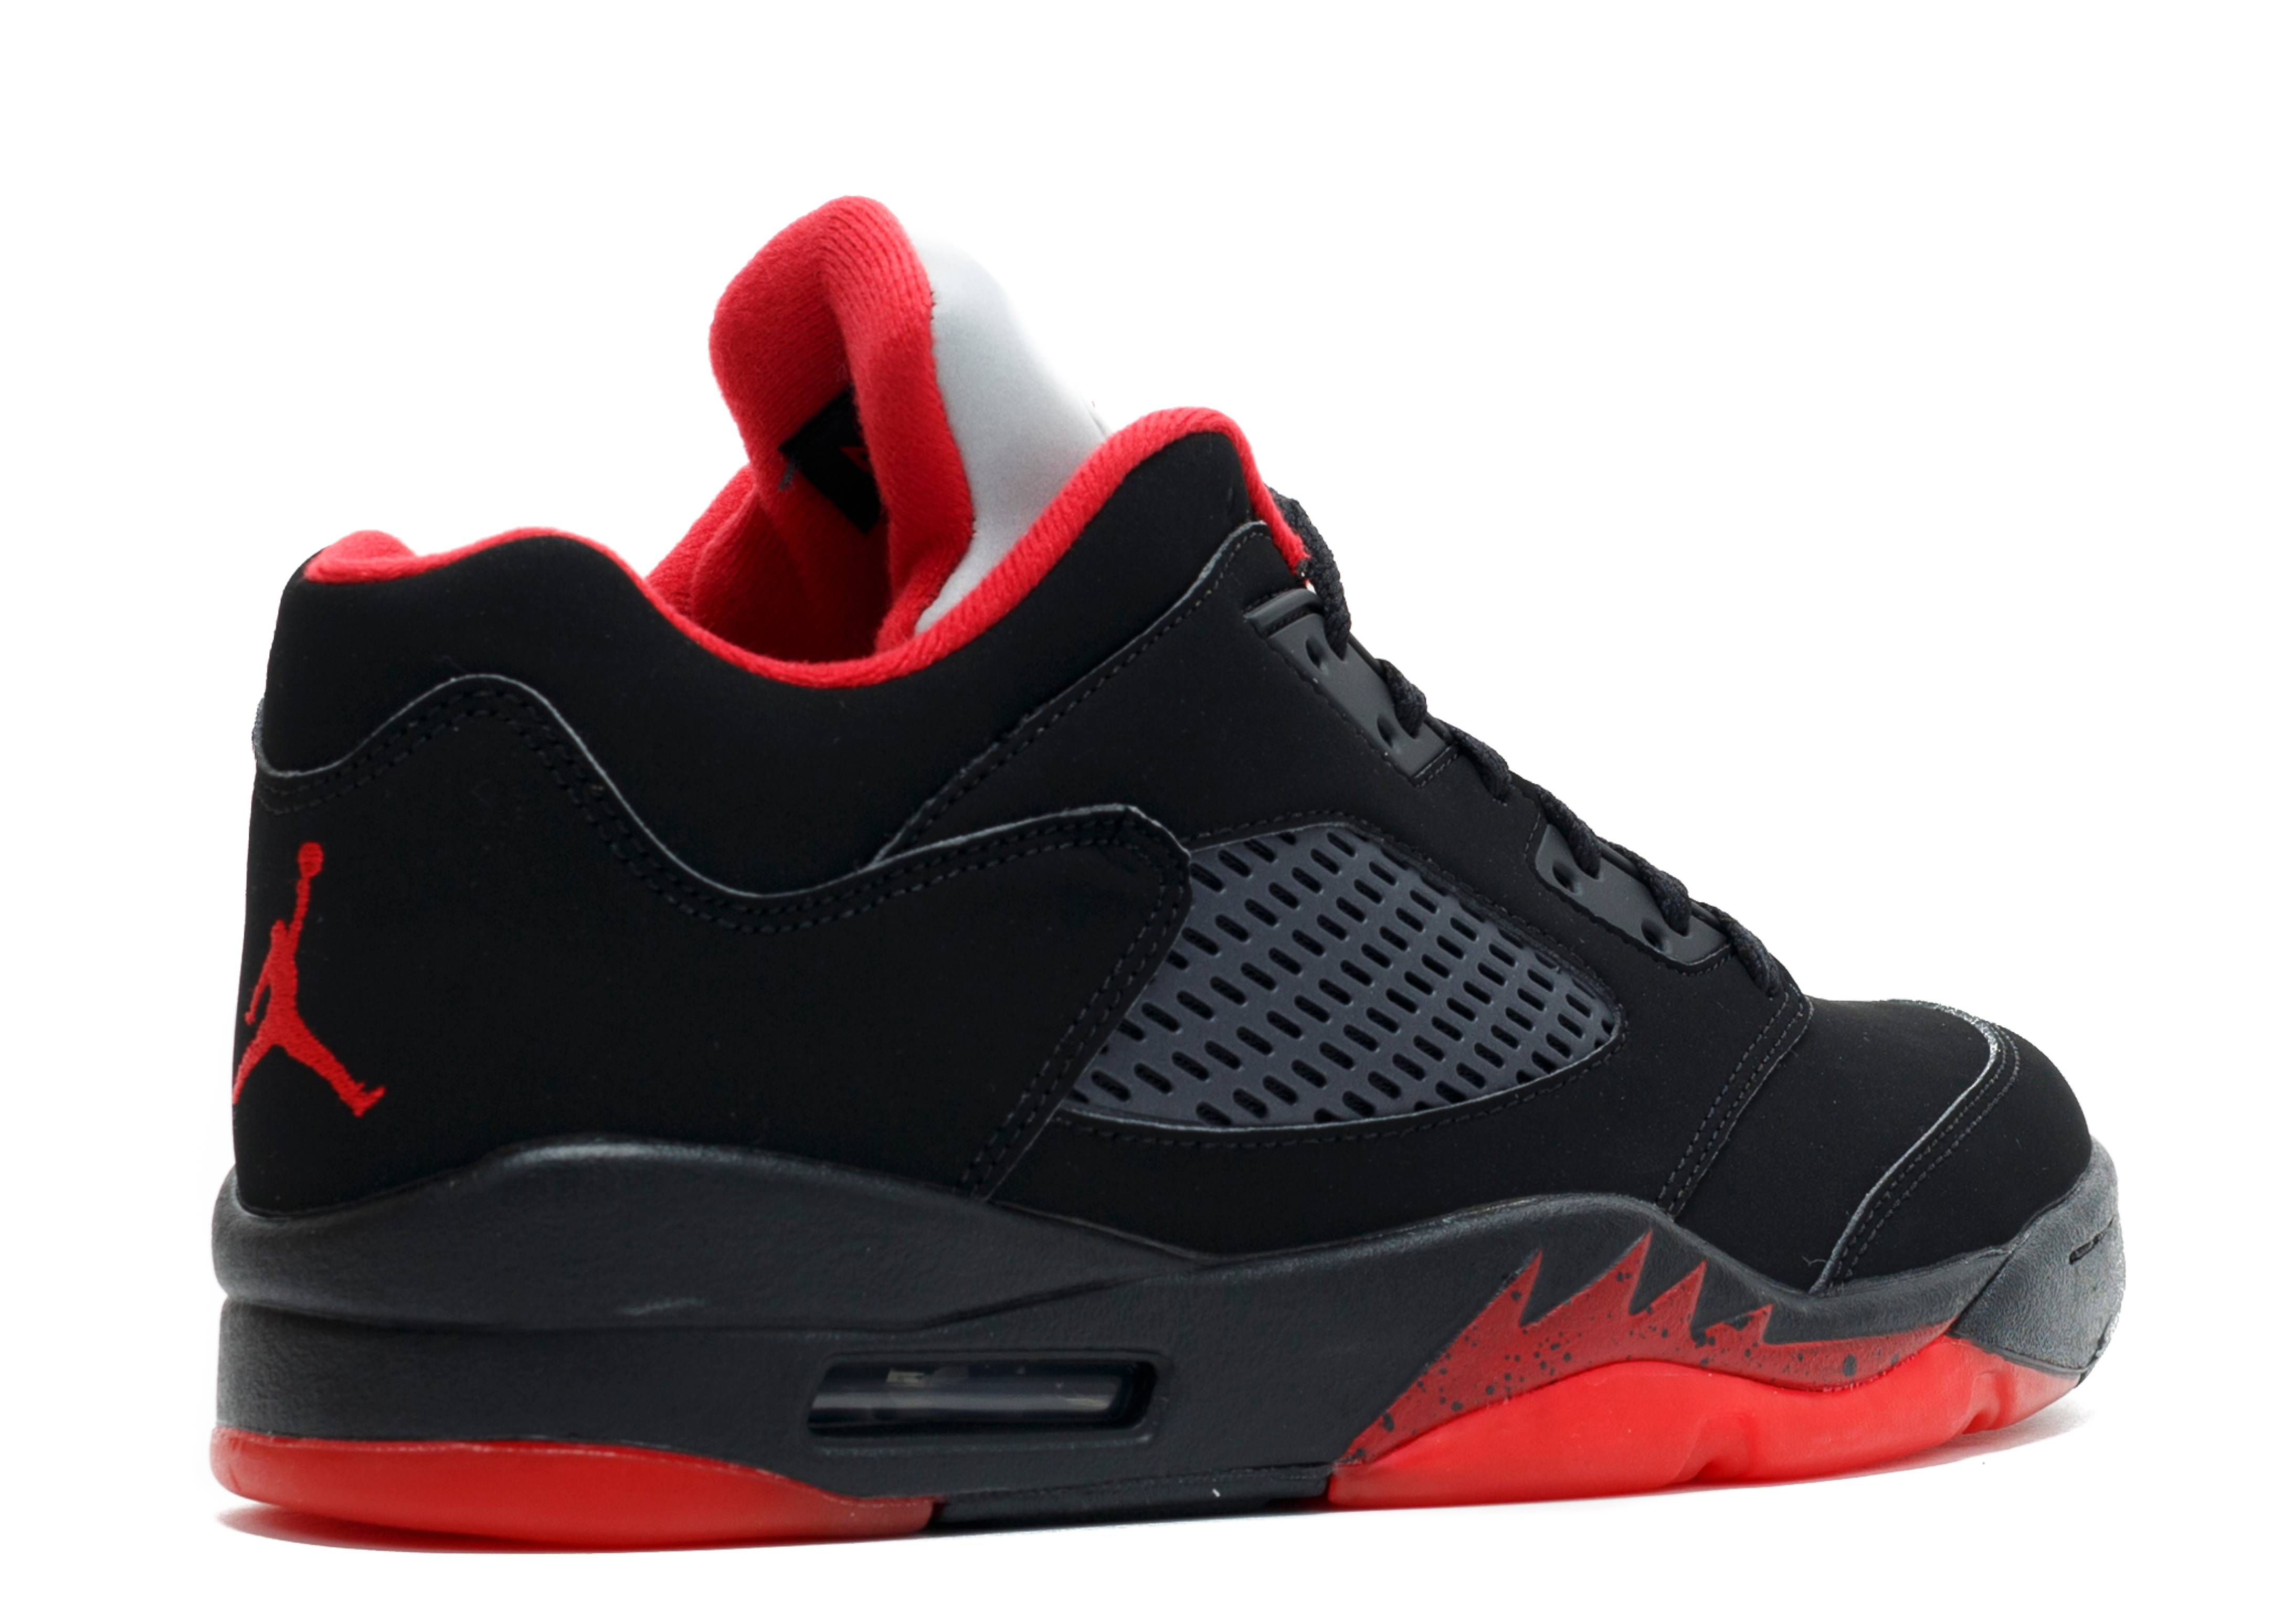 promo code c58e6 7e9e3 Air Jordan 5 Retro Low